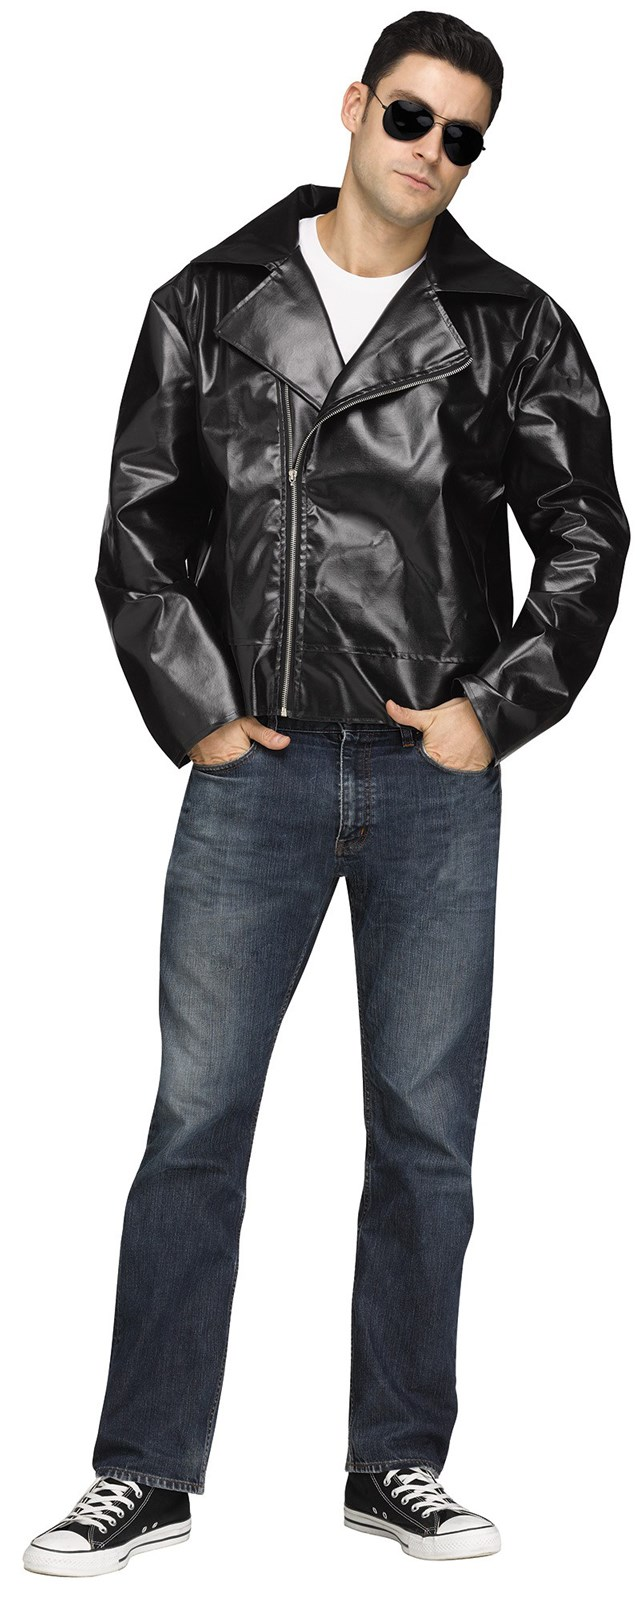 Grease - Danny Zuko Adult Costume